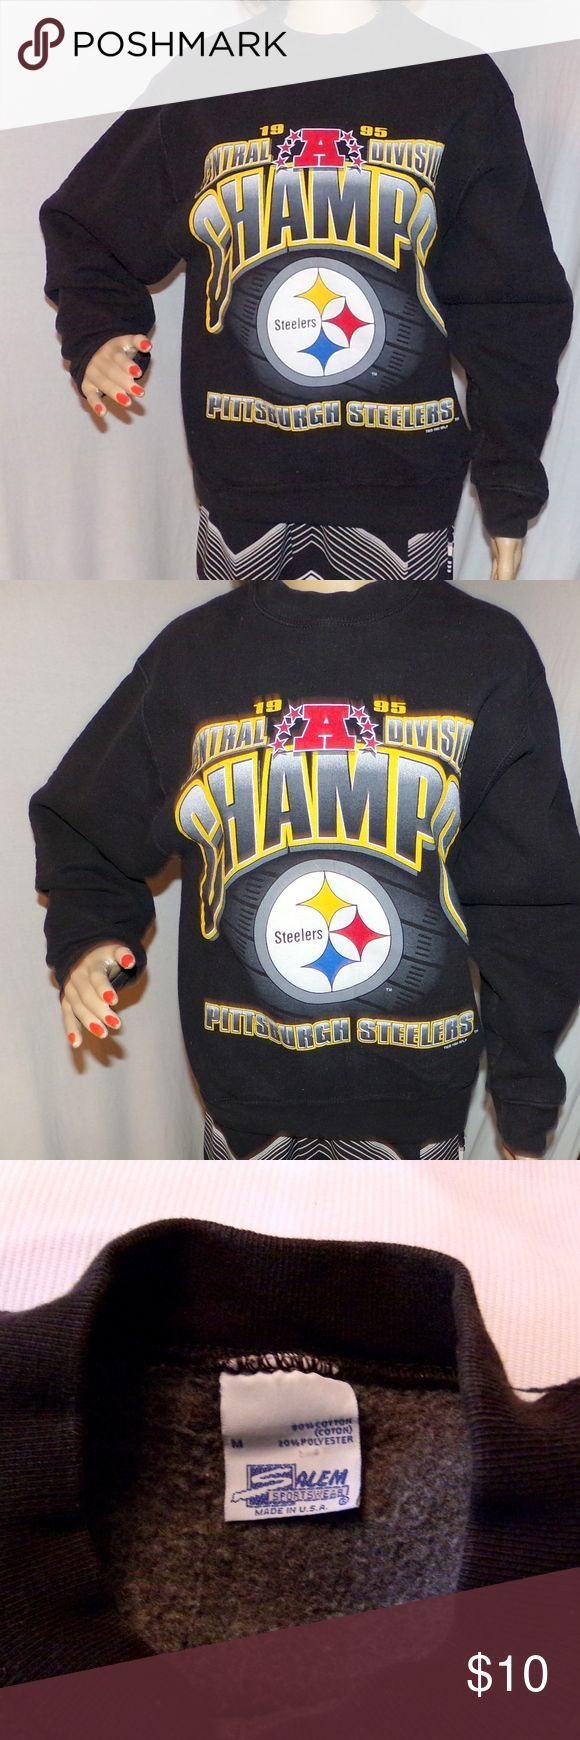 """Pittsburgh Steelers Sweatshirt Embroidered 1995 M Pittsburgh Steelers Sweatshirt Embroidered 1995 Vintage sweatshirt NFL Size M LOW & Fast Shipping. Really nice sweatshirt from back in 1995! Made of 80/20 Cotton/Poly Blend and made by Salem Sportswear in the USA. It is in VG-Excellent Vintage Condition 23 years old! Go Steeler Nation. MEASUREMENTS: Size is M (Medium)  Length-25""""/Chest-20"""" Model's Measurments are 32-24-33 BUNDLE 2 or more of our items for a FAIR SPECIAL PRICE :) Salem…"""